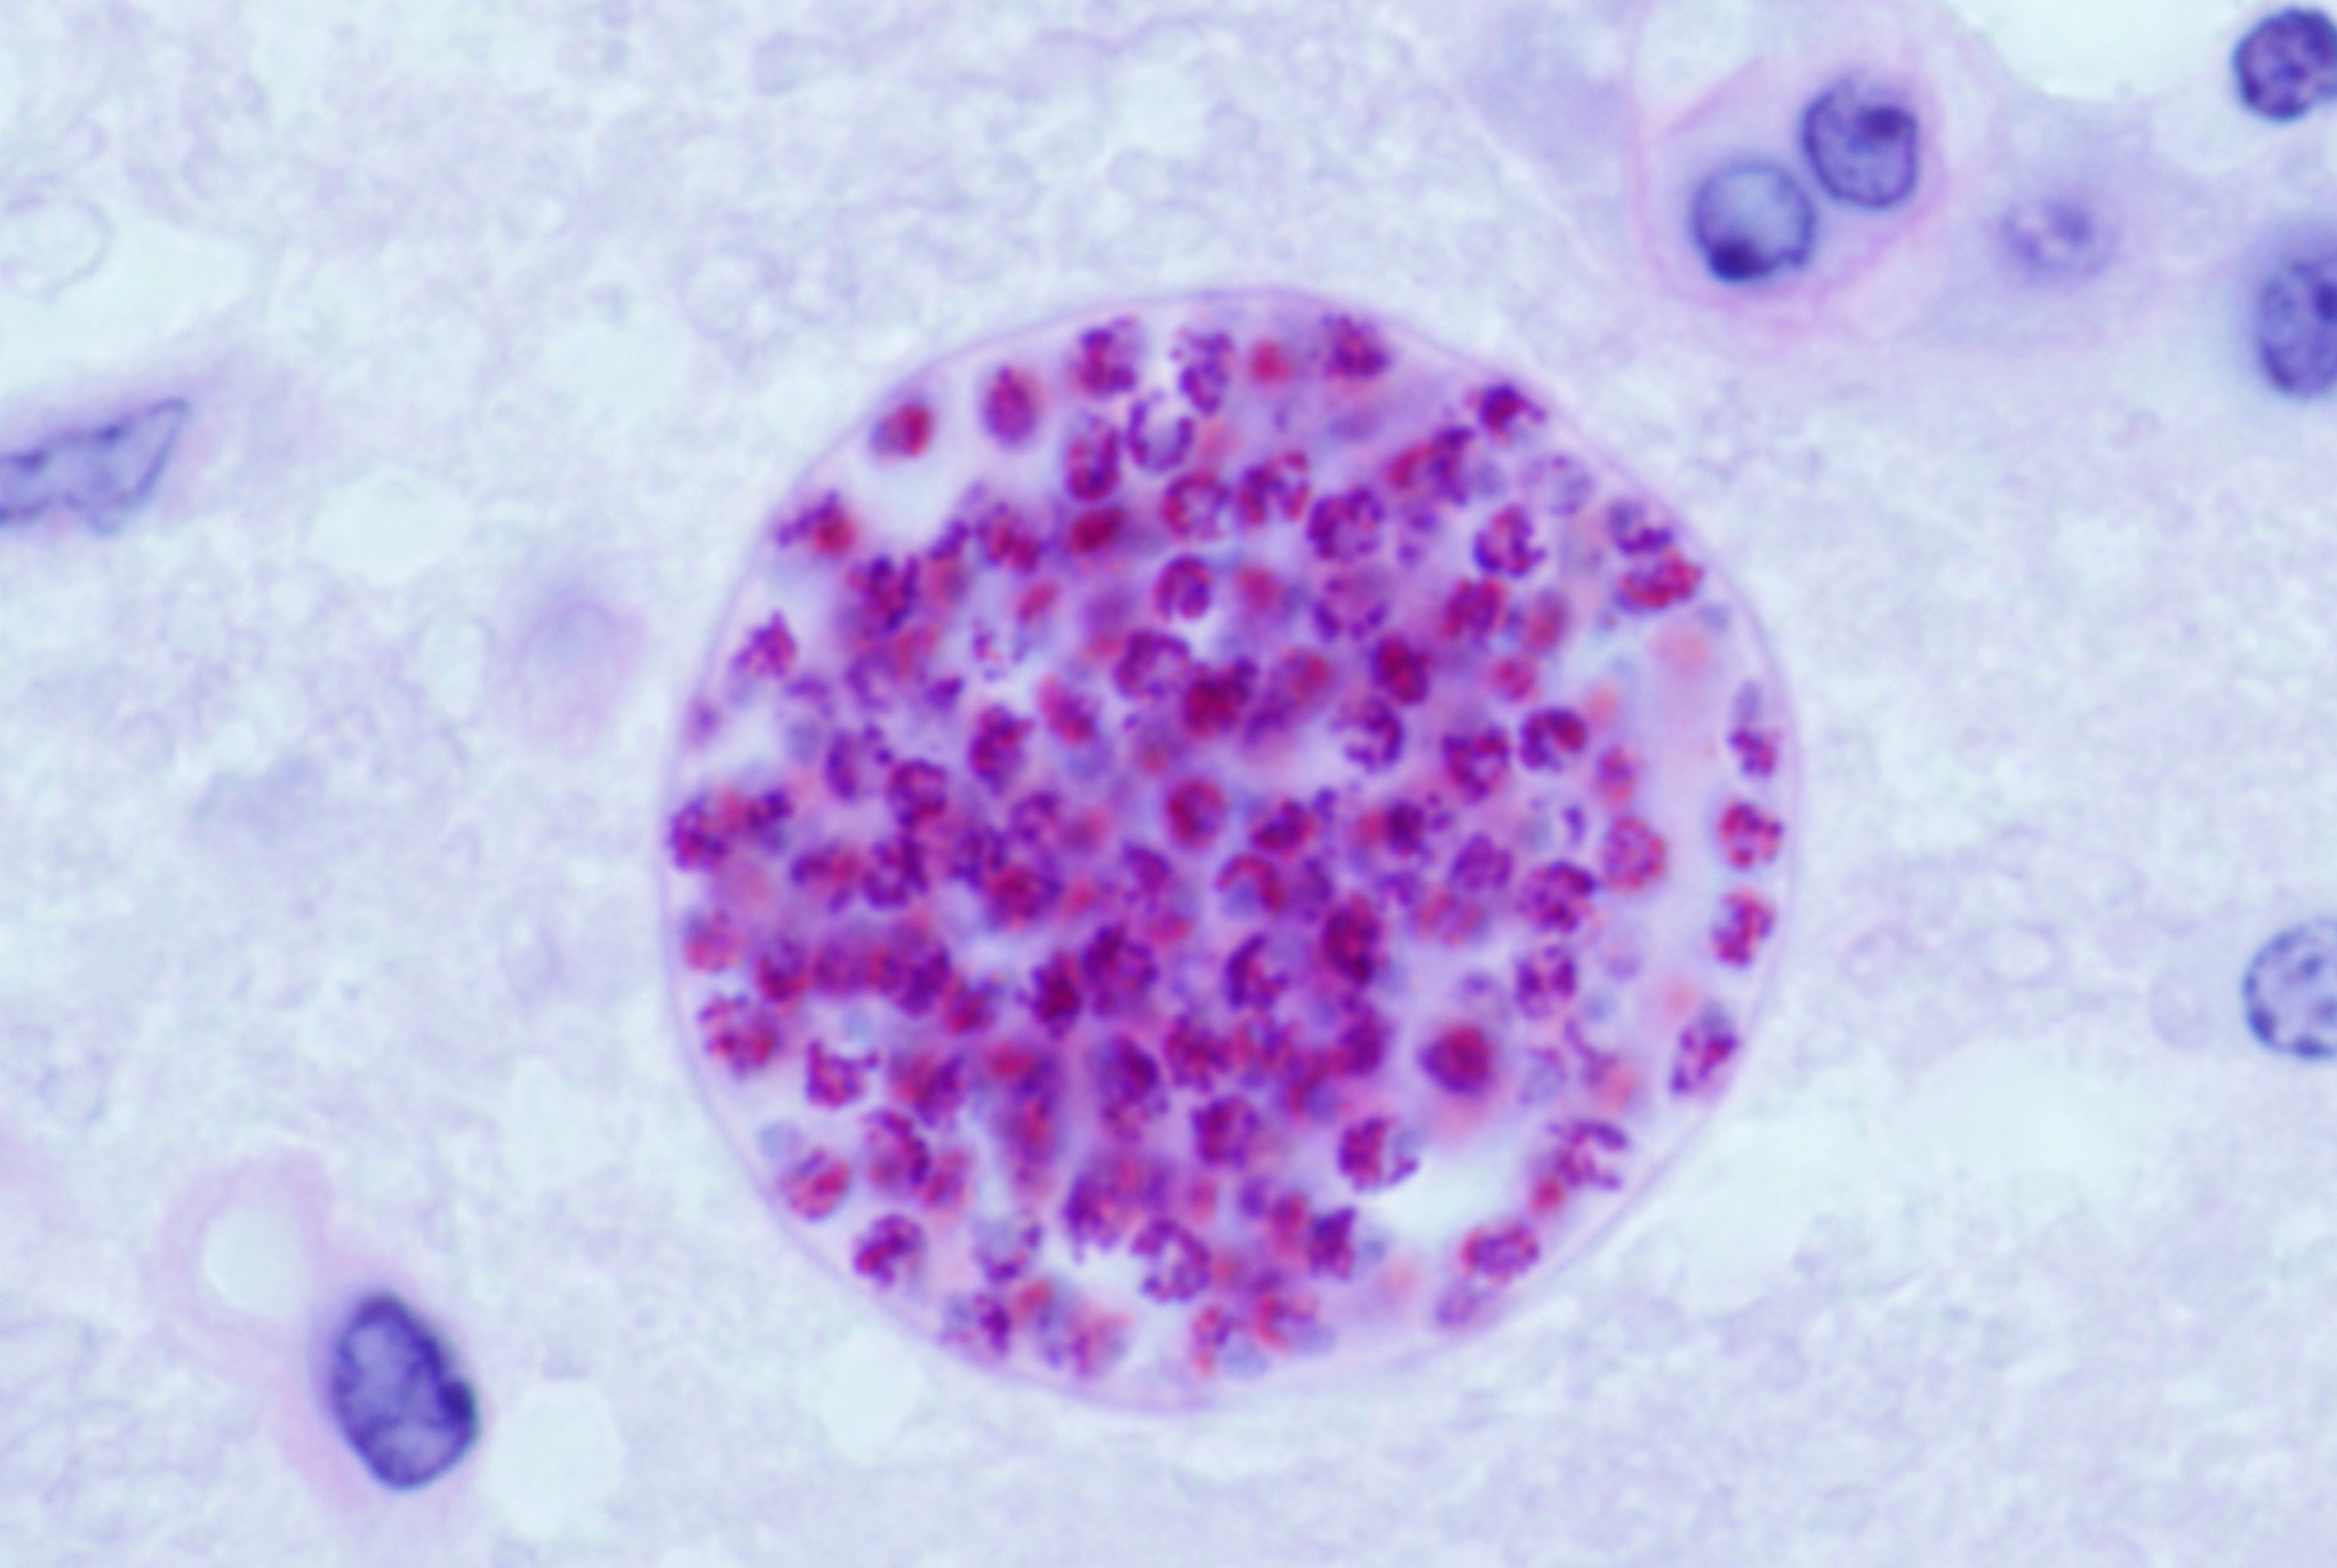 red blood cells research paper